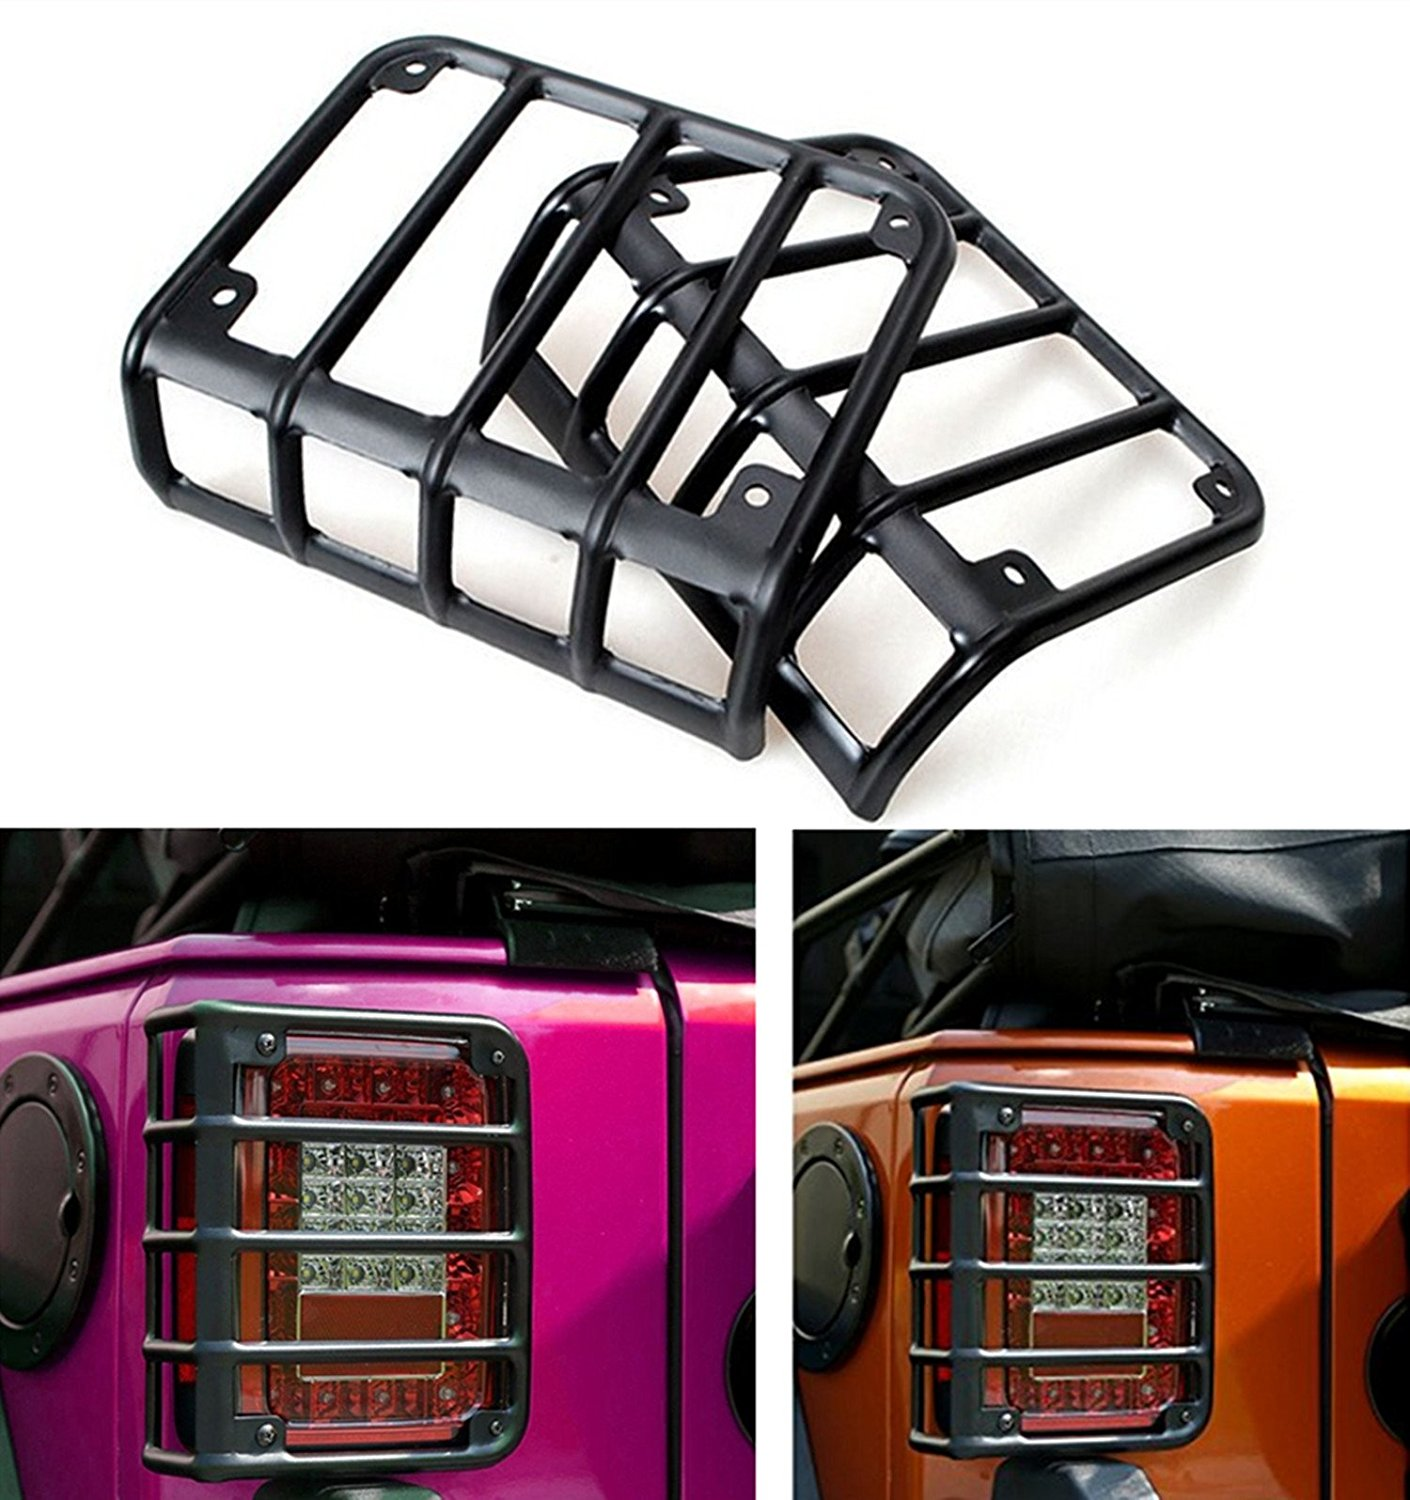 Pair Matte Black Rear Euro Tail Light Guard Cover Protector 2007-2016 for Jeep Wrangler JK Unlimited auto products Lantsun rear break led tail lights backup tail lamp high mount stop light for 2007 2016 jeep wrangler jk unlimited jk rubicon sahara